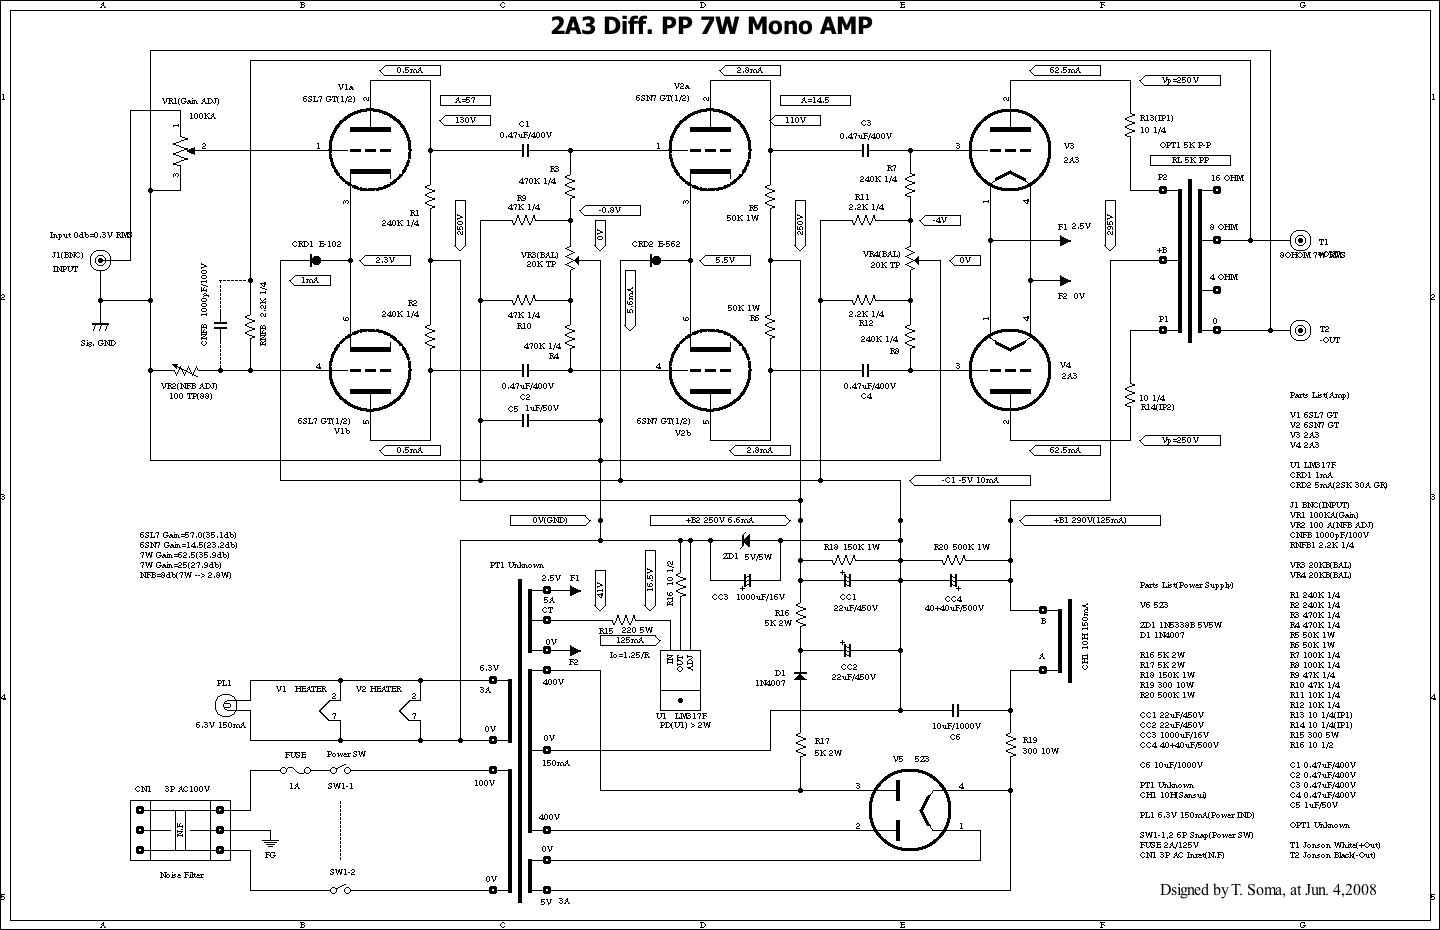 Mitsubishi Infinity Radio   Wiring Diagram additionally 1993 Chrysler Concorde Wiring Diagram additionally Daewoo Espero Audio Stereo Wiring System together with Jeep Infinity Gold   Wiring Diagram additionally Wiring Diagram For Infinity 36670  lifier. on infinity 36670 amp wiring diagram